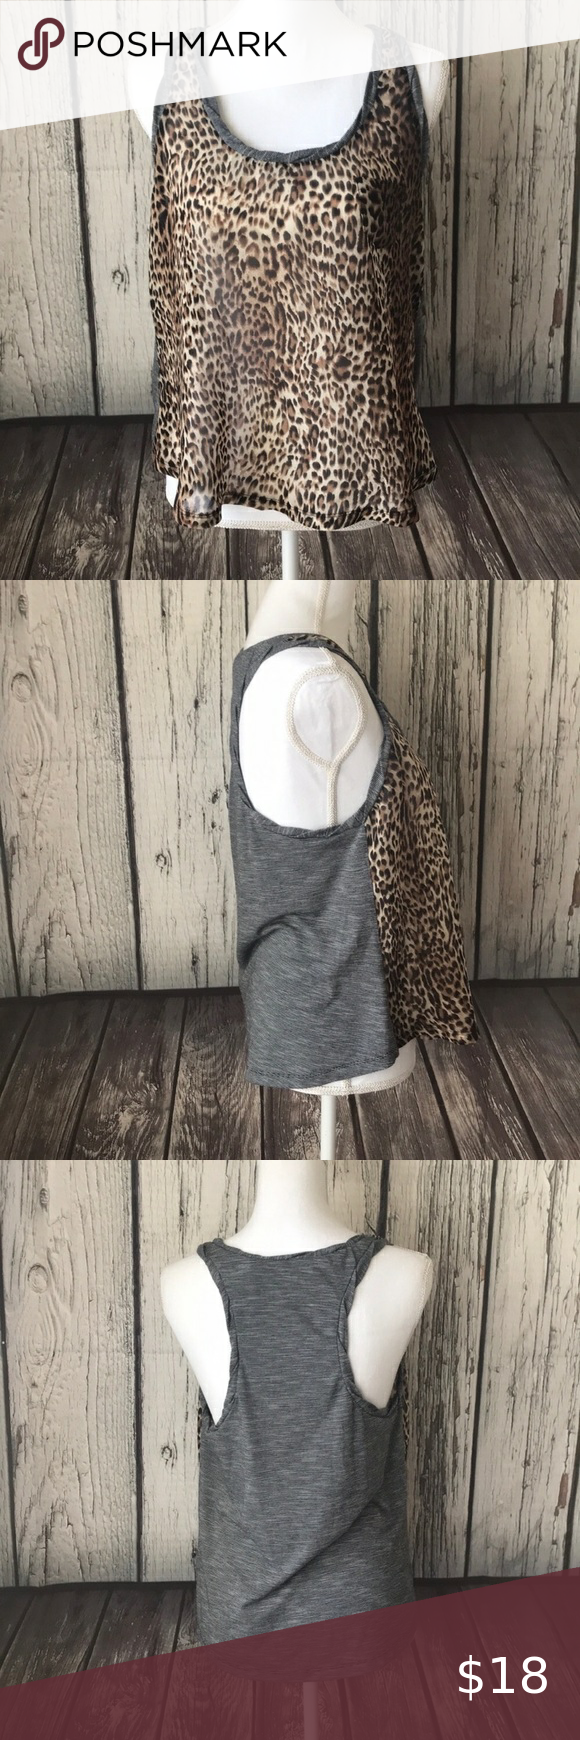 4/$25 DayTrip Animal Print Racer Back Top size m DayTrip Animal Print Racer Back Top size medium Approximate measurements Pit to pit 18 inches Length 22.5 inches 100-0525-919-10 Daytrip Tops Tank Tops